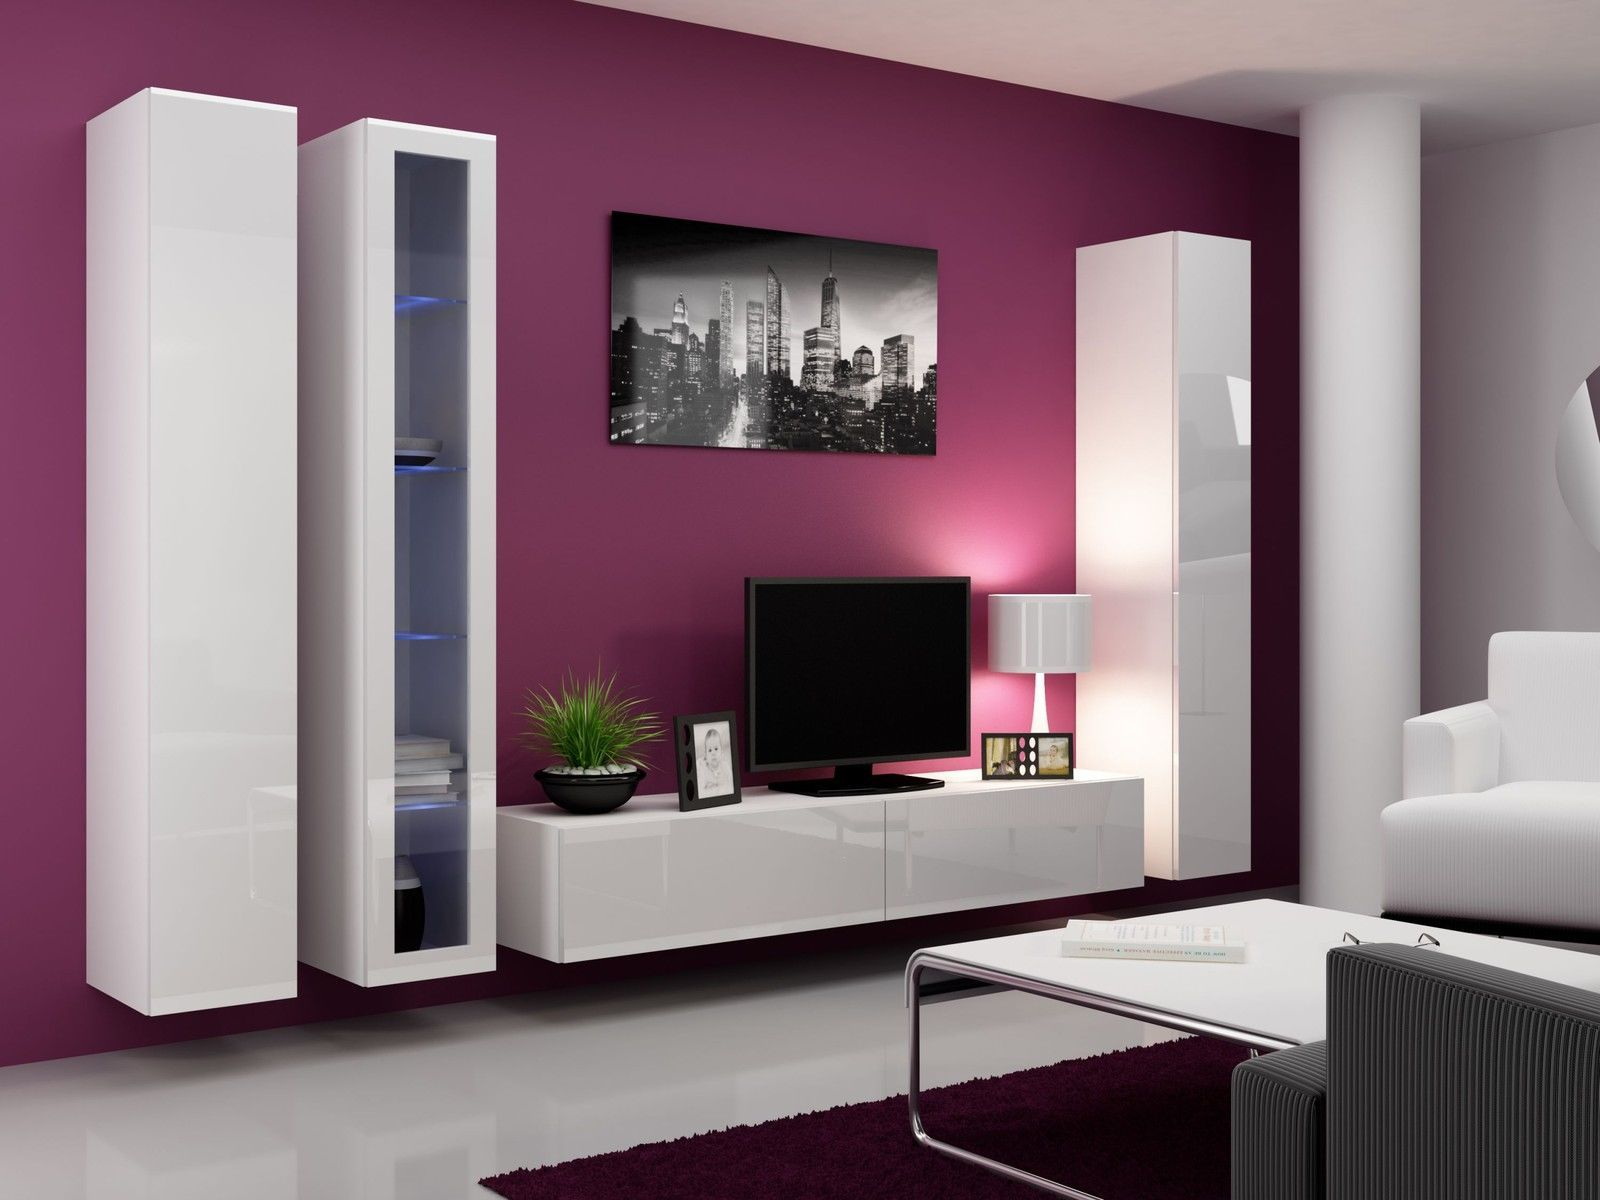 15 Storage Wall Units That Impress And Organize Any Space Modern